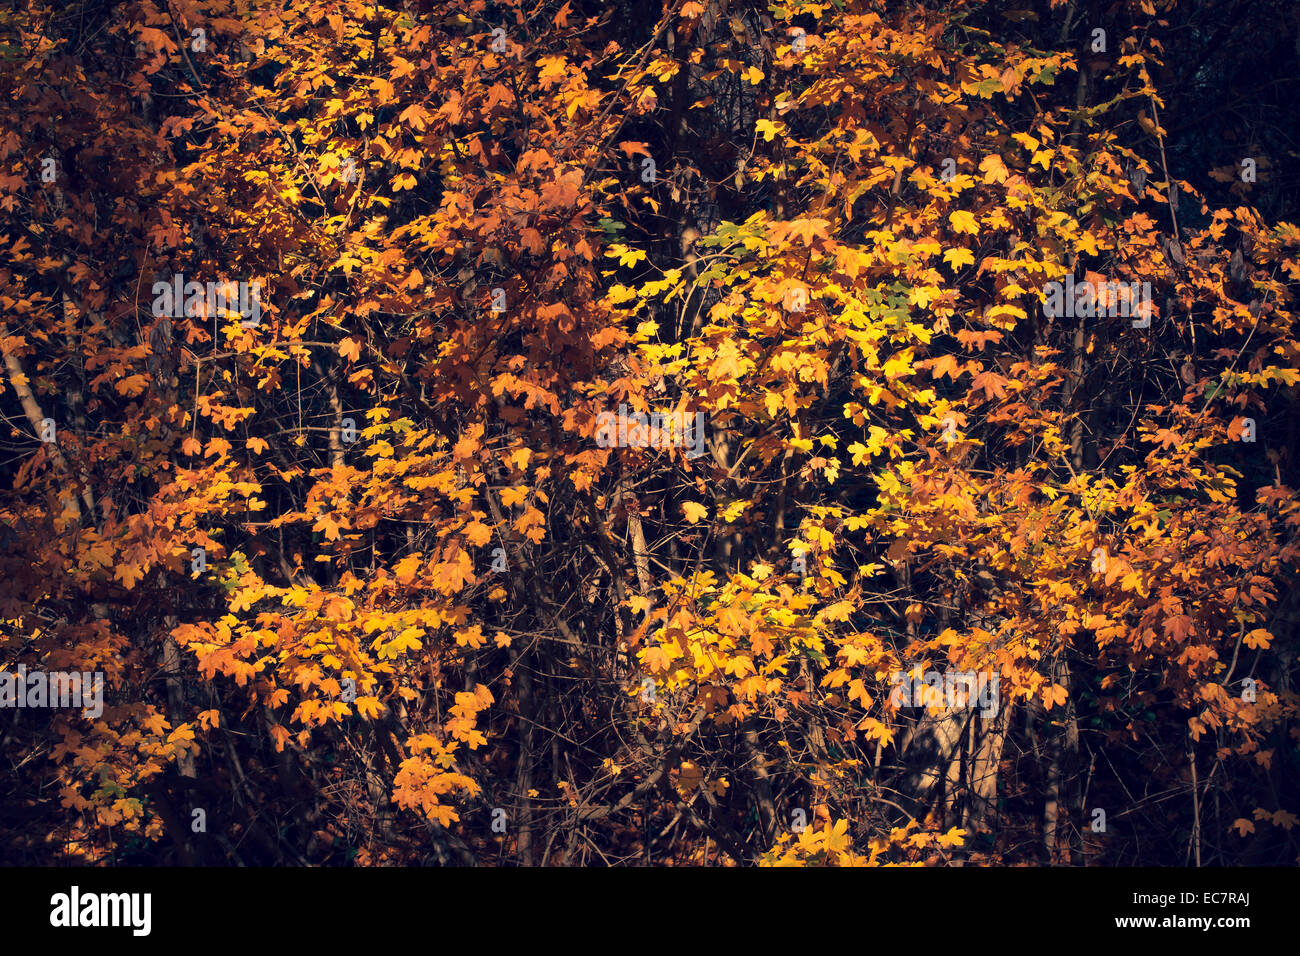 autumn trees leaves - Stock Image